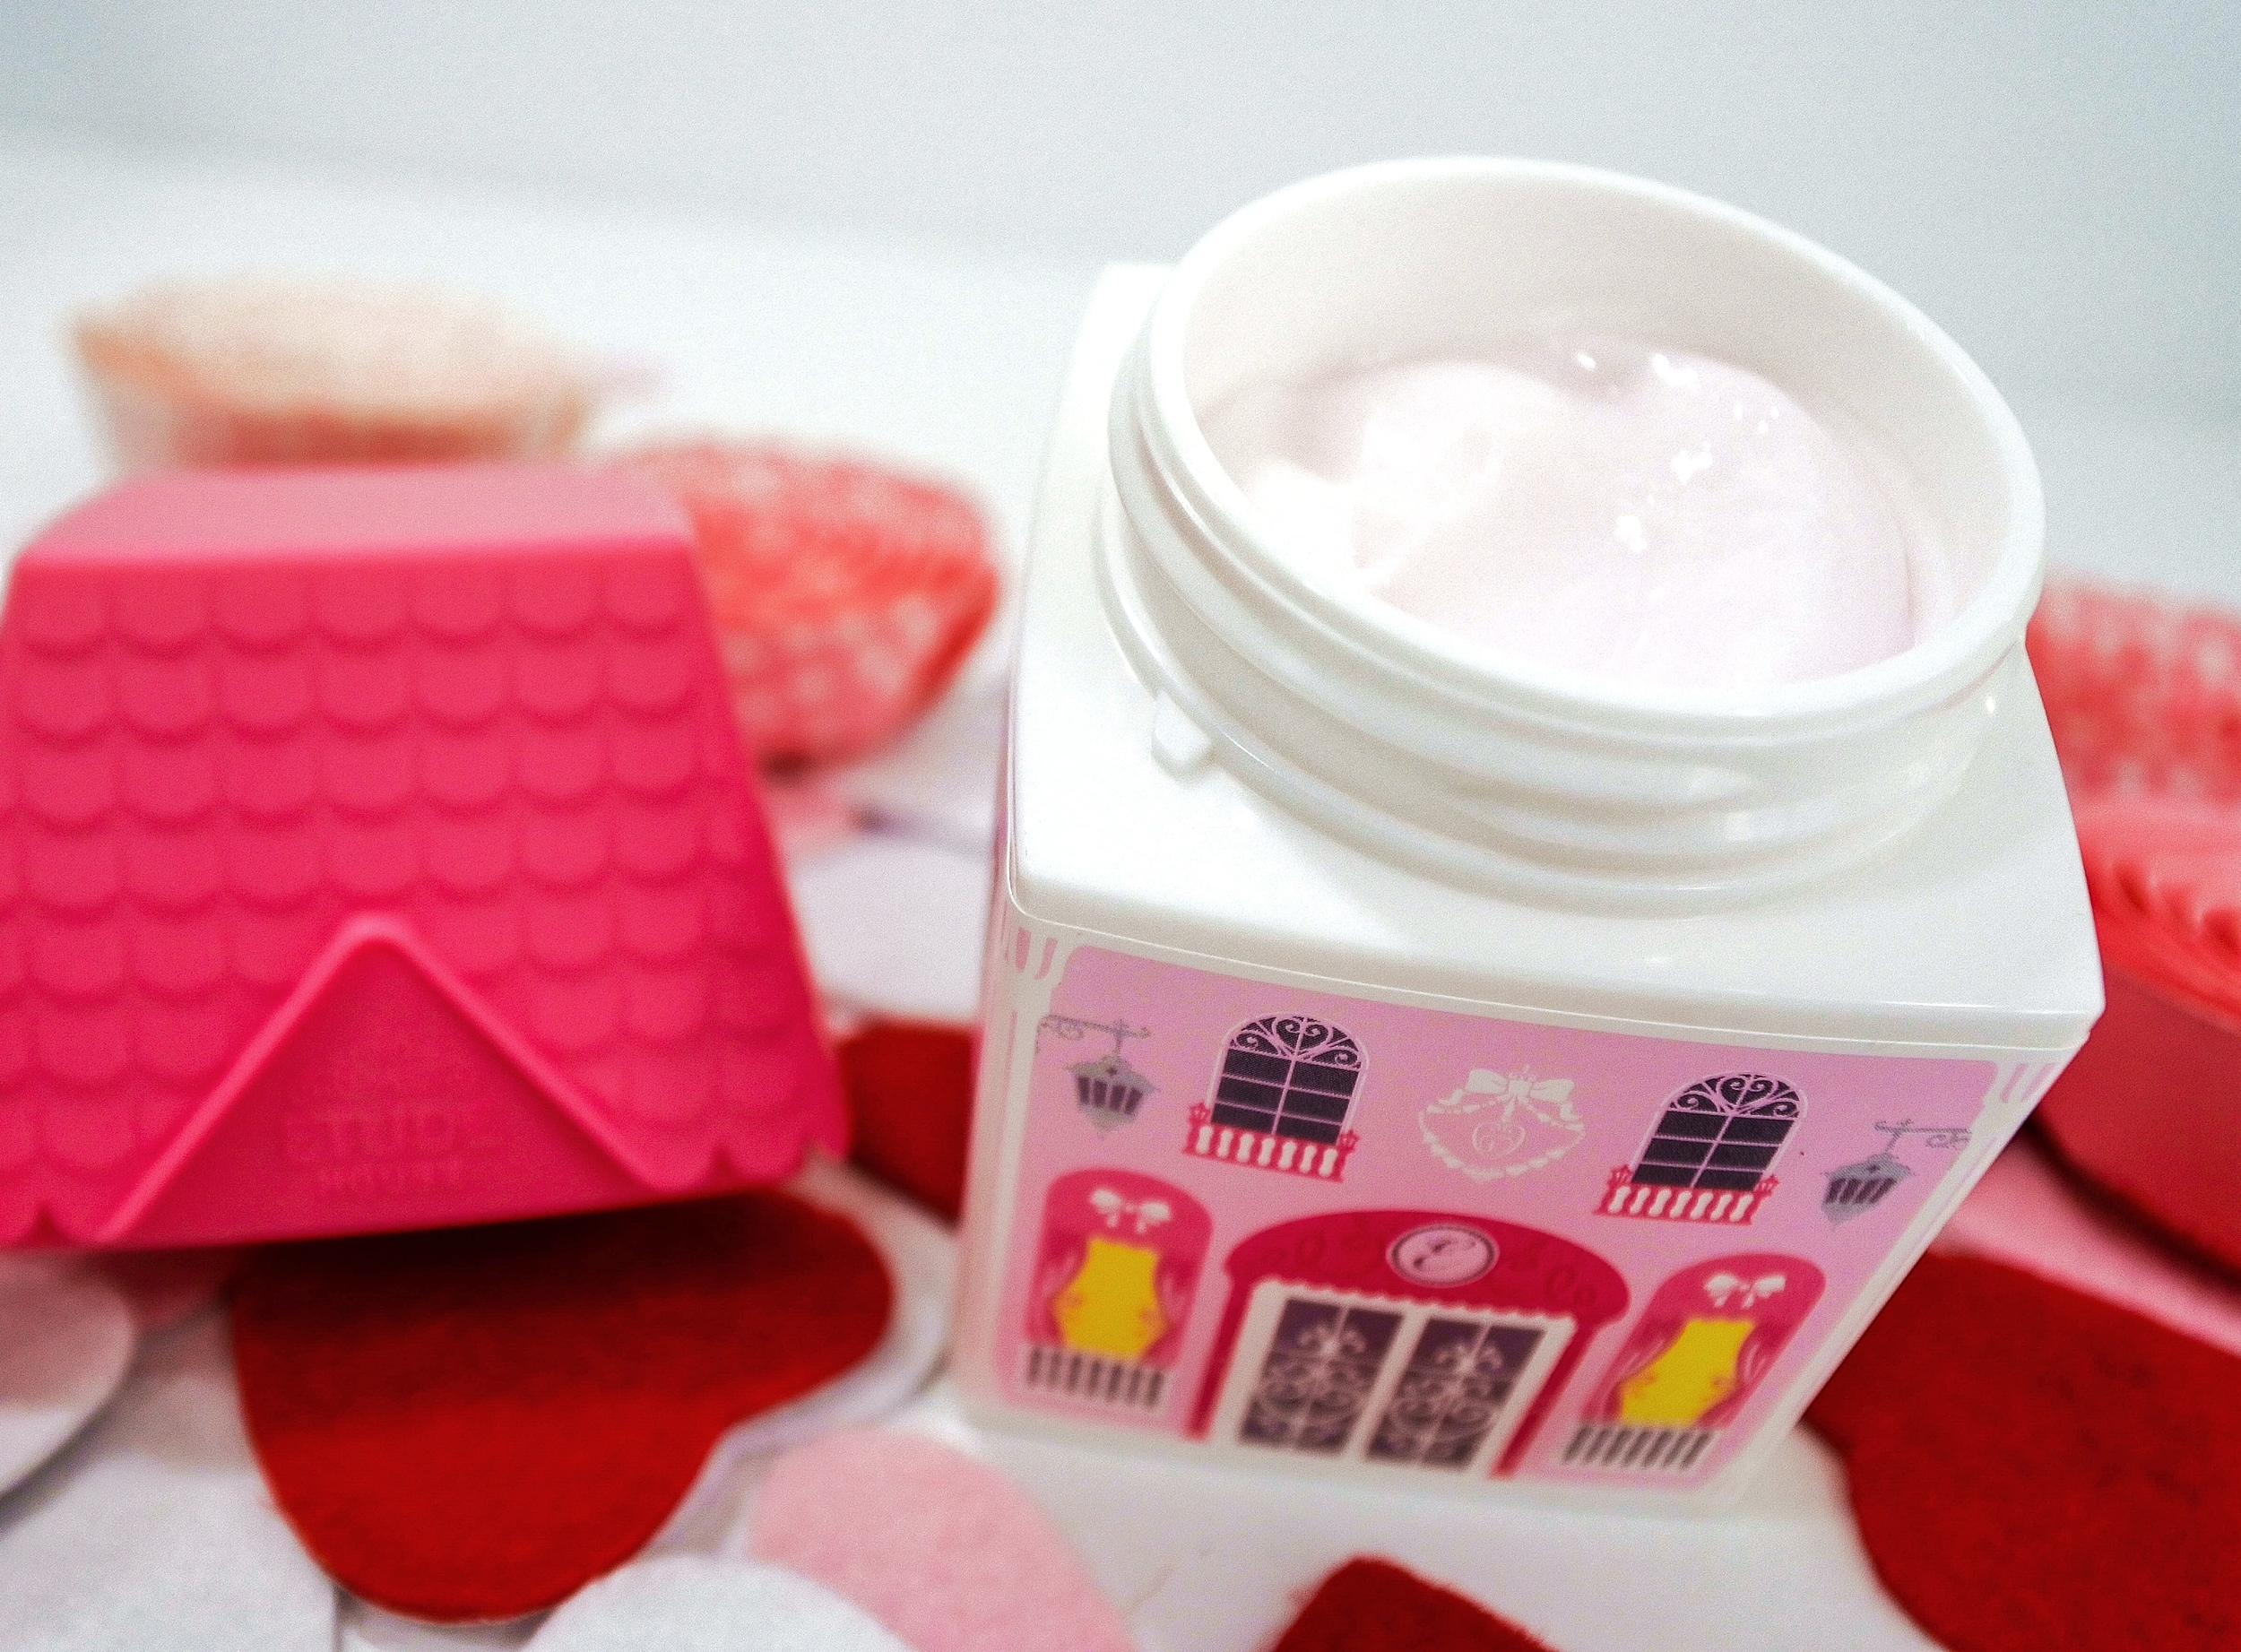 Etude House My Castle Hand Cream - Inside look of the cream texture.